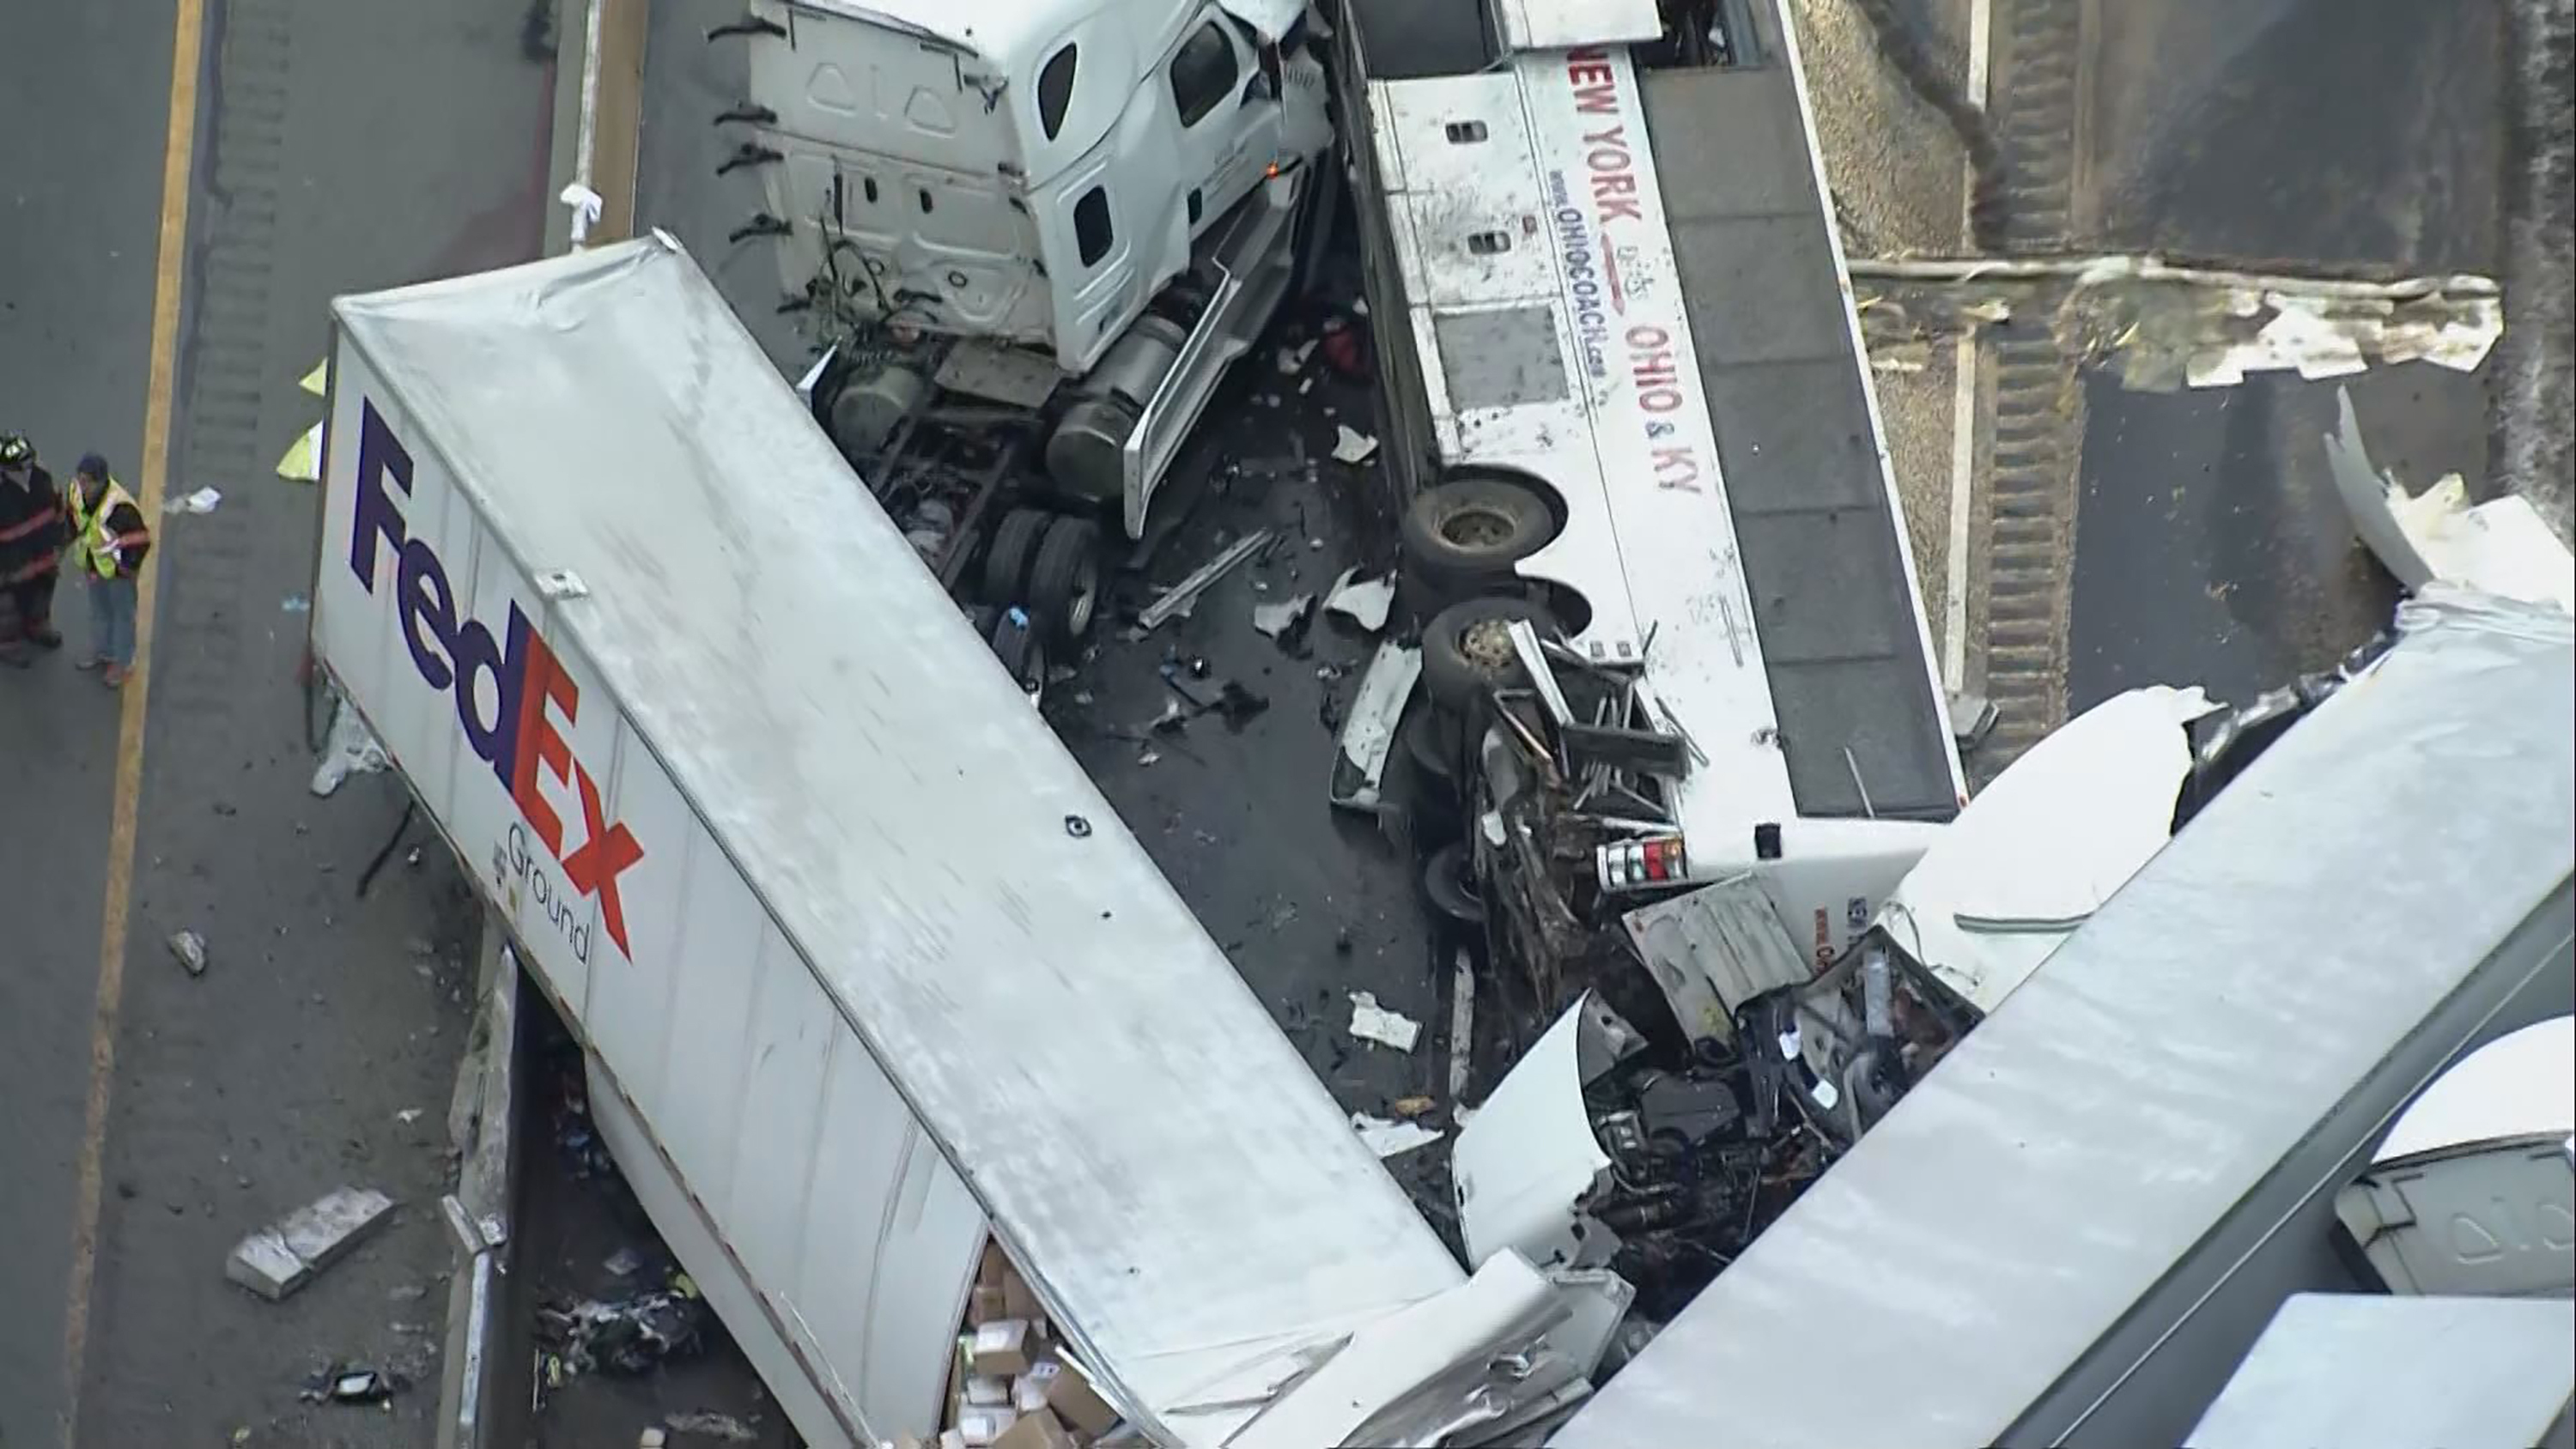 Rent A Wreck Nj >> Tour Bus In Massive Pa Turnpike Wreck That Killed 5 Is